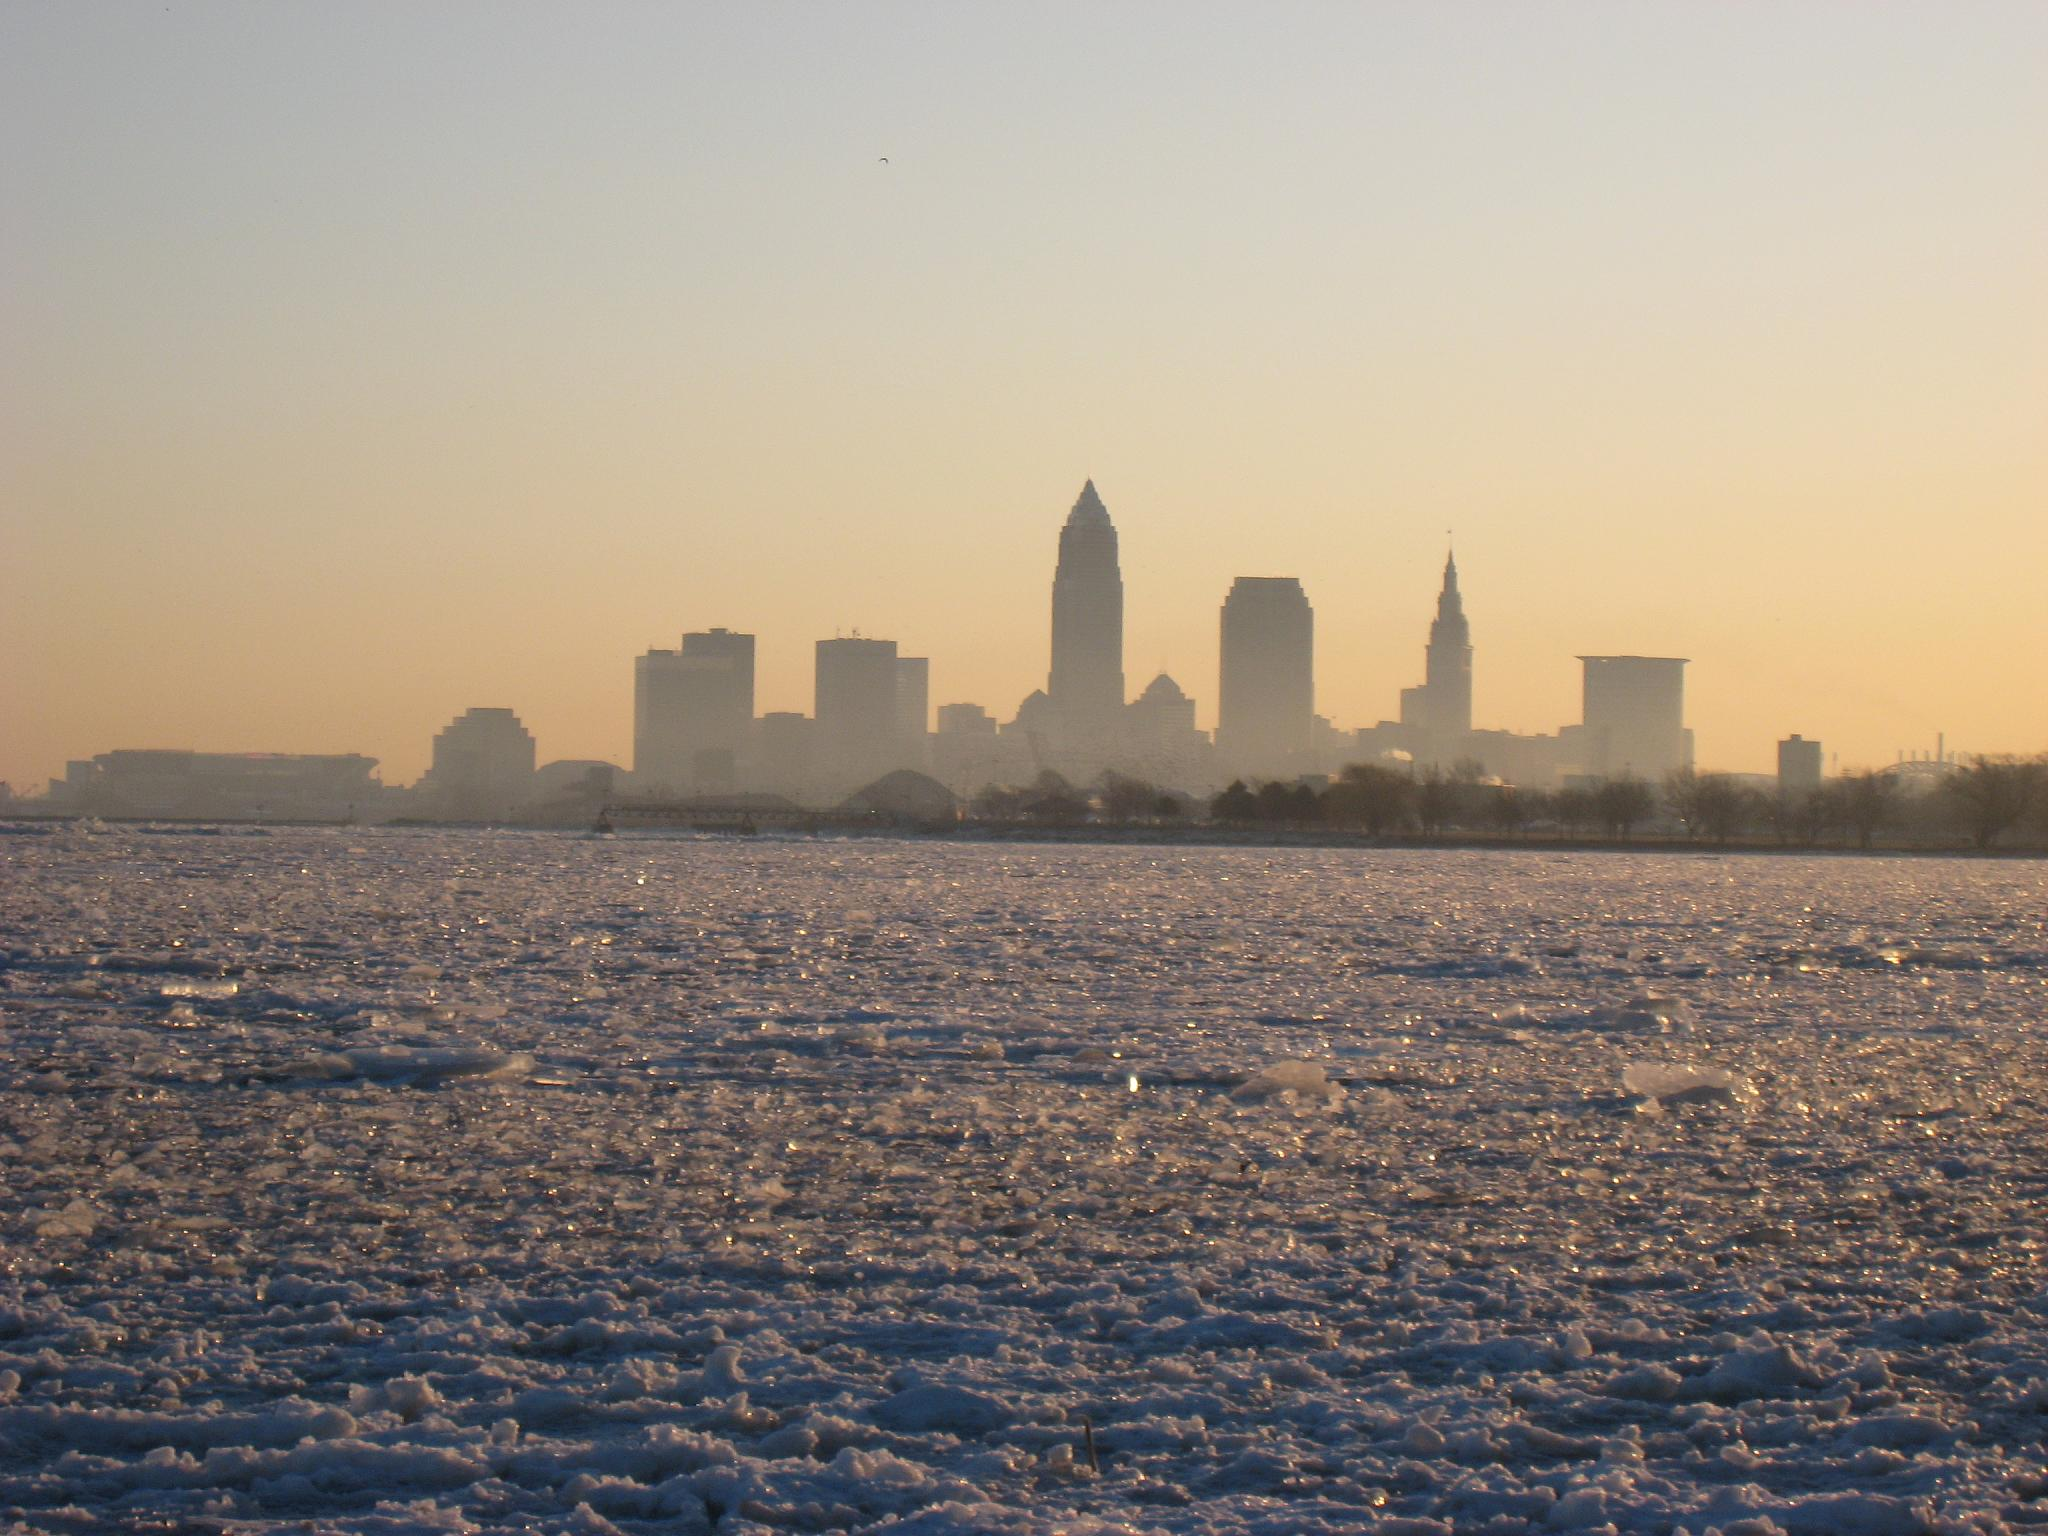 http://upload.wikimedia.org/wikipedia/commons/6/63/LakeErie_Cleveland_frozen.jpg